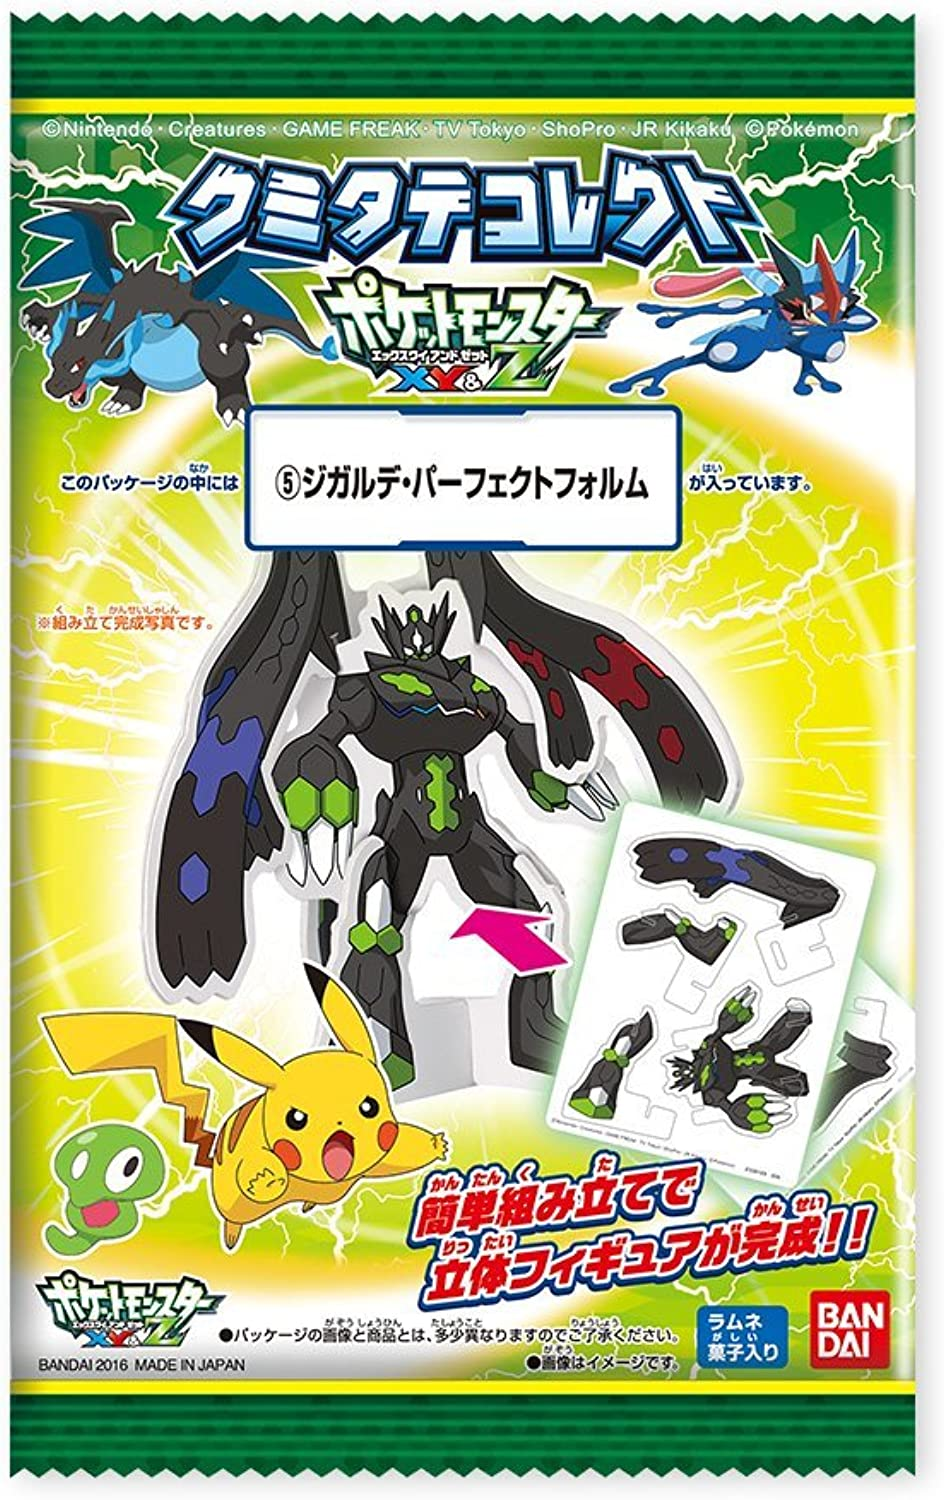 Kumi greenical collect Pokemon XY & Z 16 pieces Candy Toys & soft confectionery products (Pokemon)